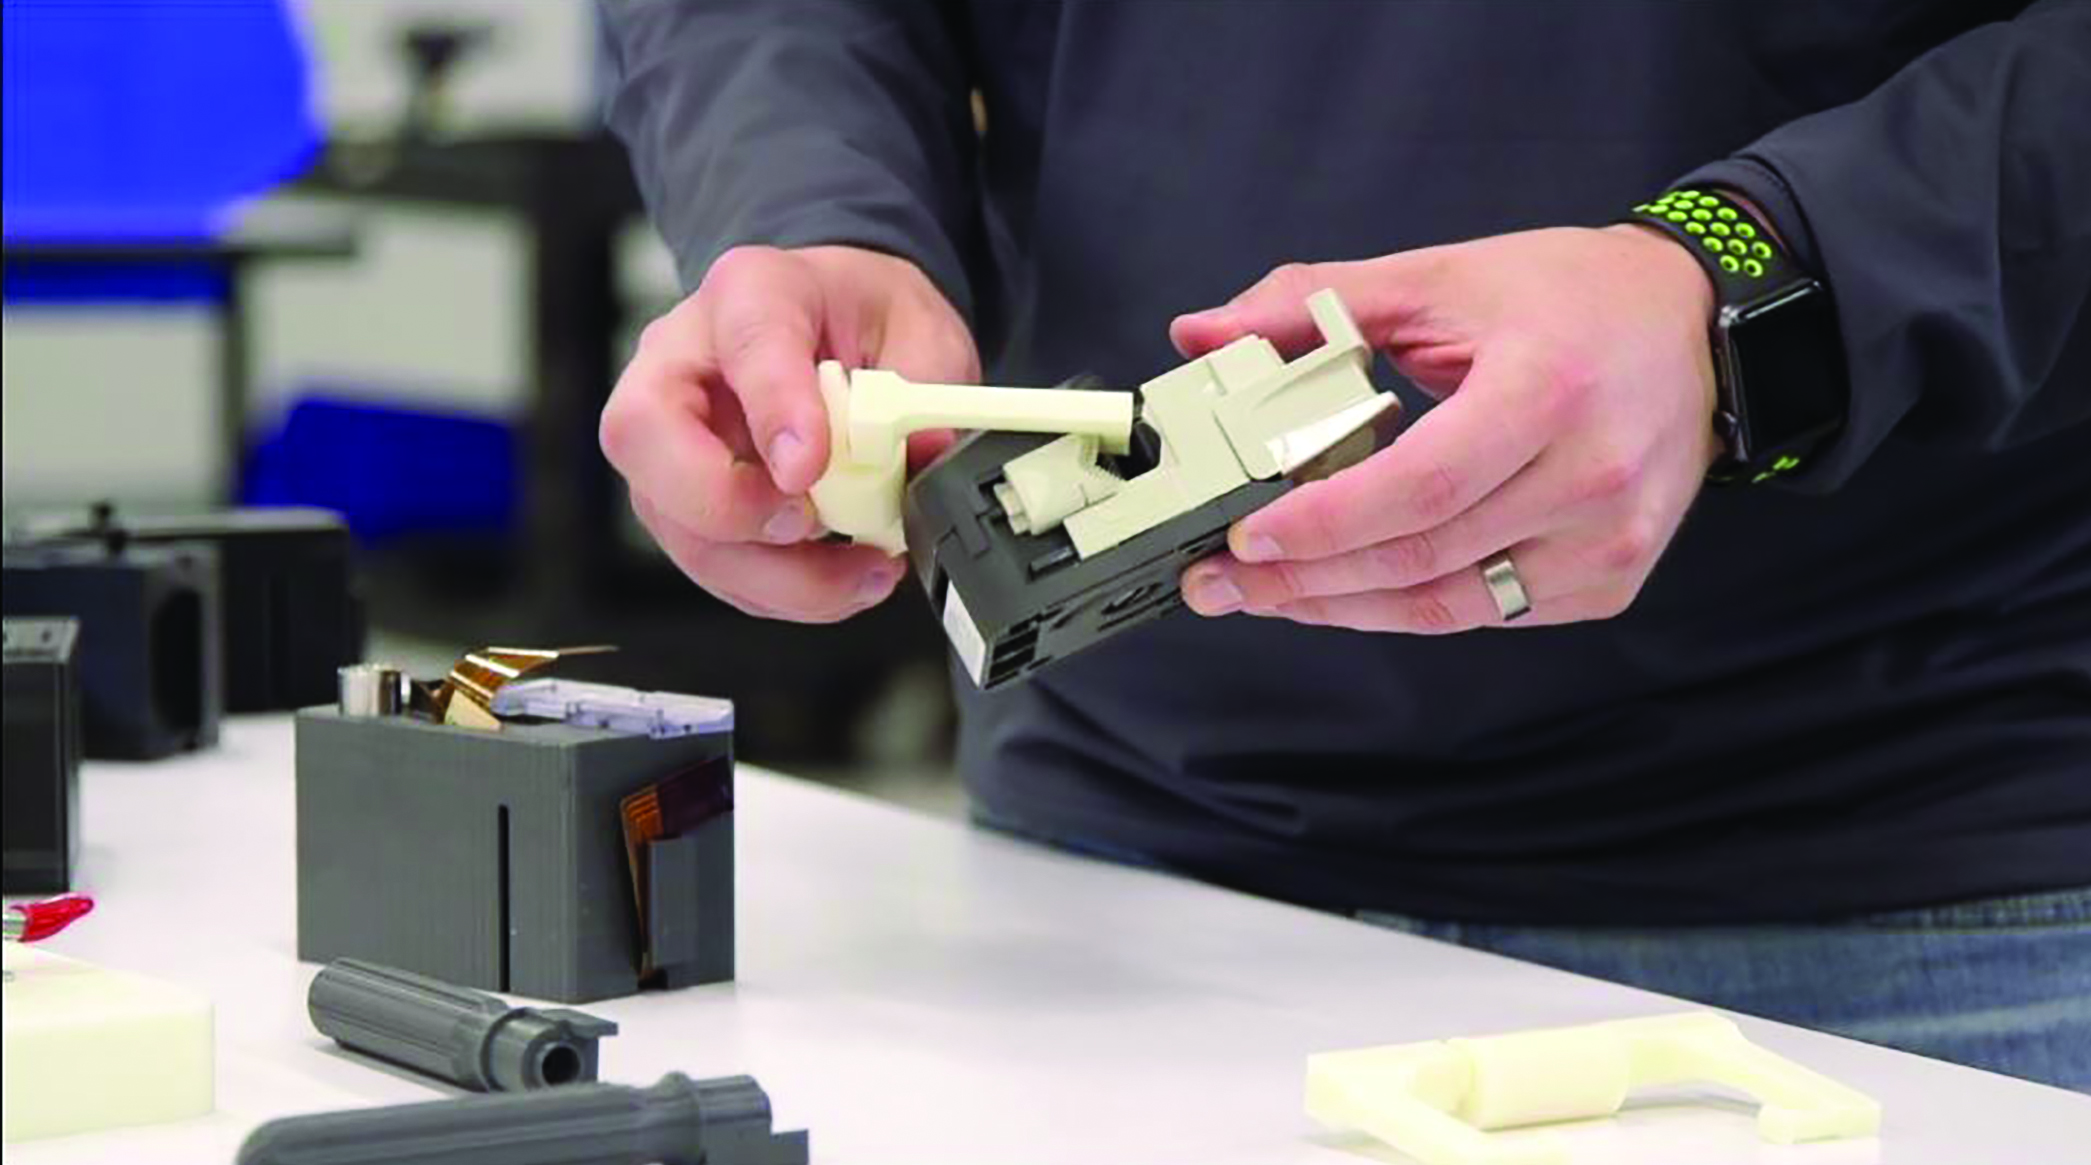 Several of CSI's 3D printed manufacturing aids